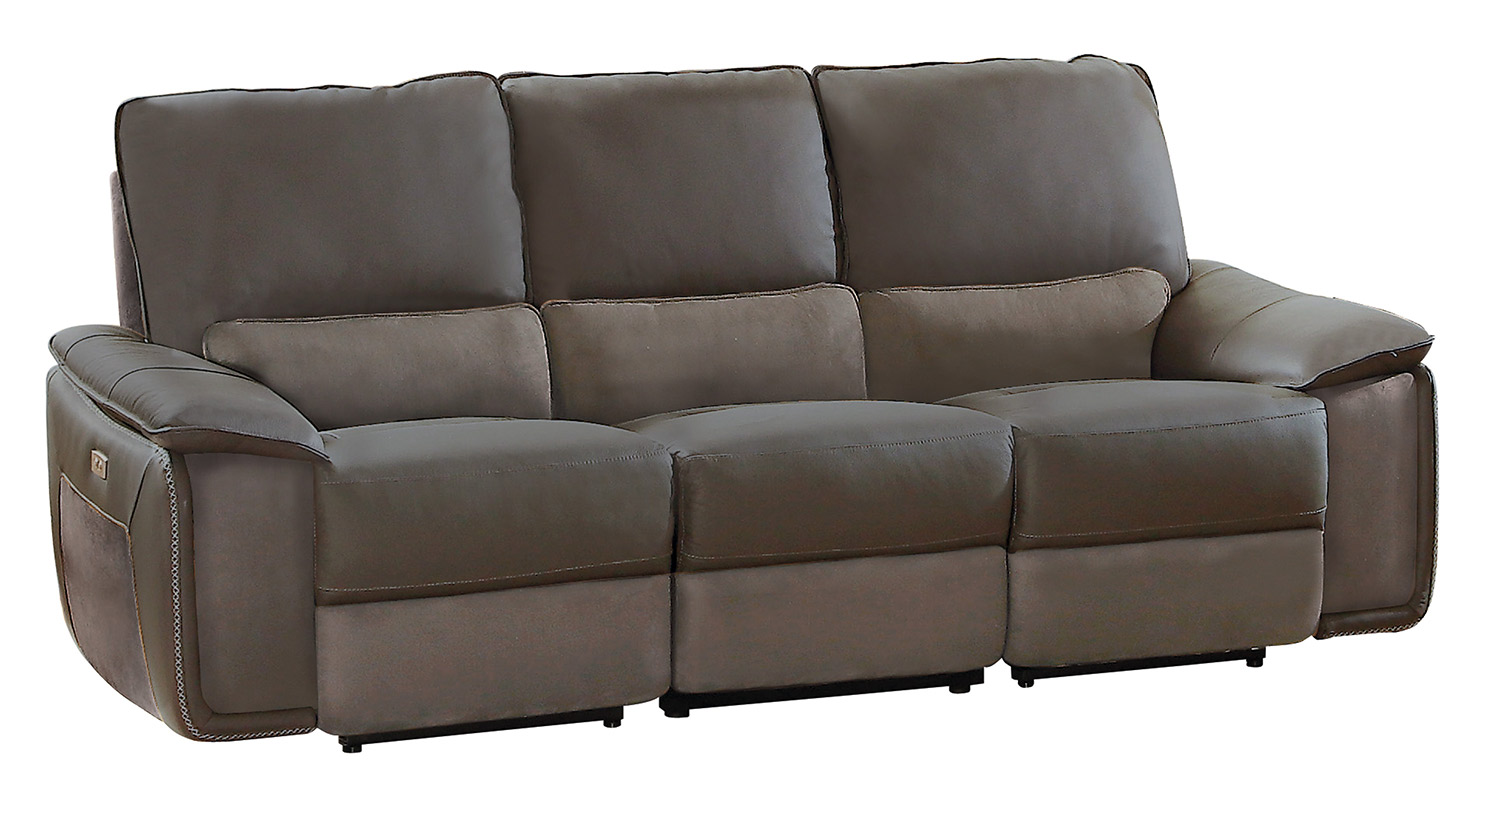 Homelegance Corazon Power Double Reclining Sofa   Navy Gray Top Grain  Leather/Fabric